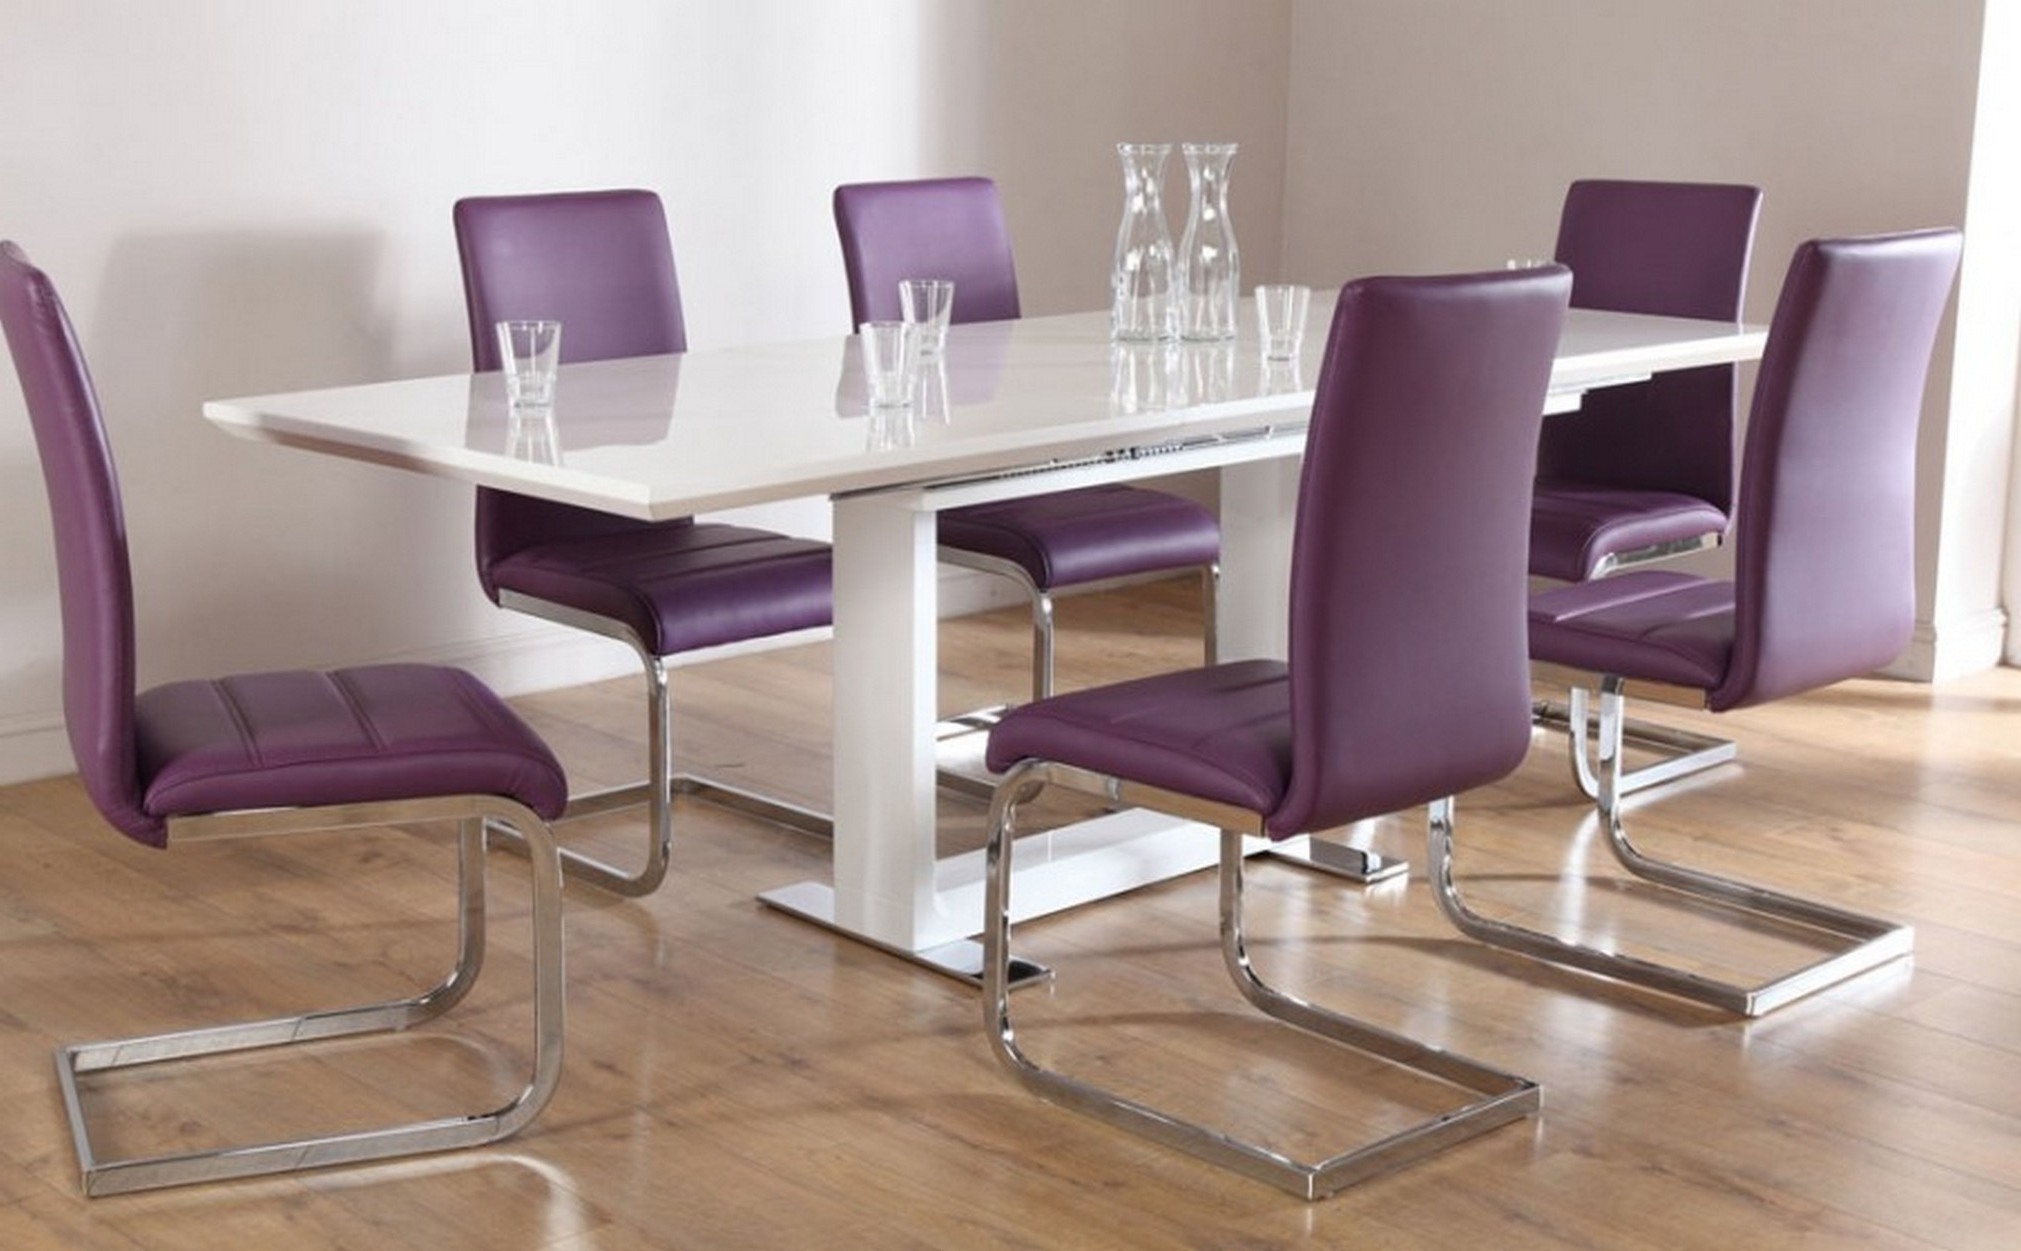 Dining Tables And Purple Chairs Inside Latest Oblong Dining Tables New Chair Contemporary Dining Chairs New Dining (Gallery 7 of 25)